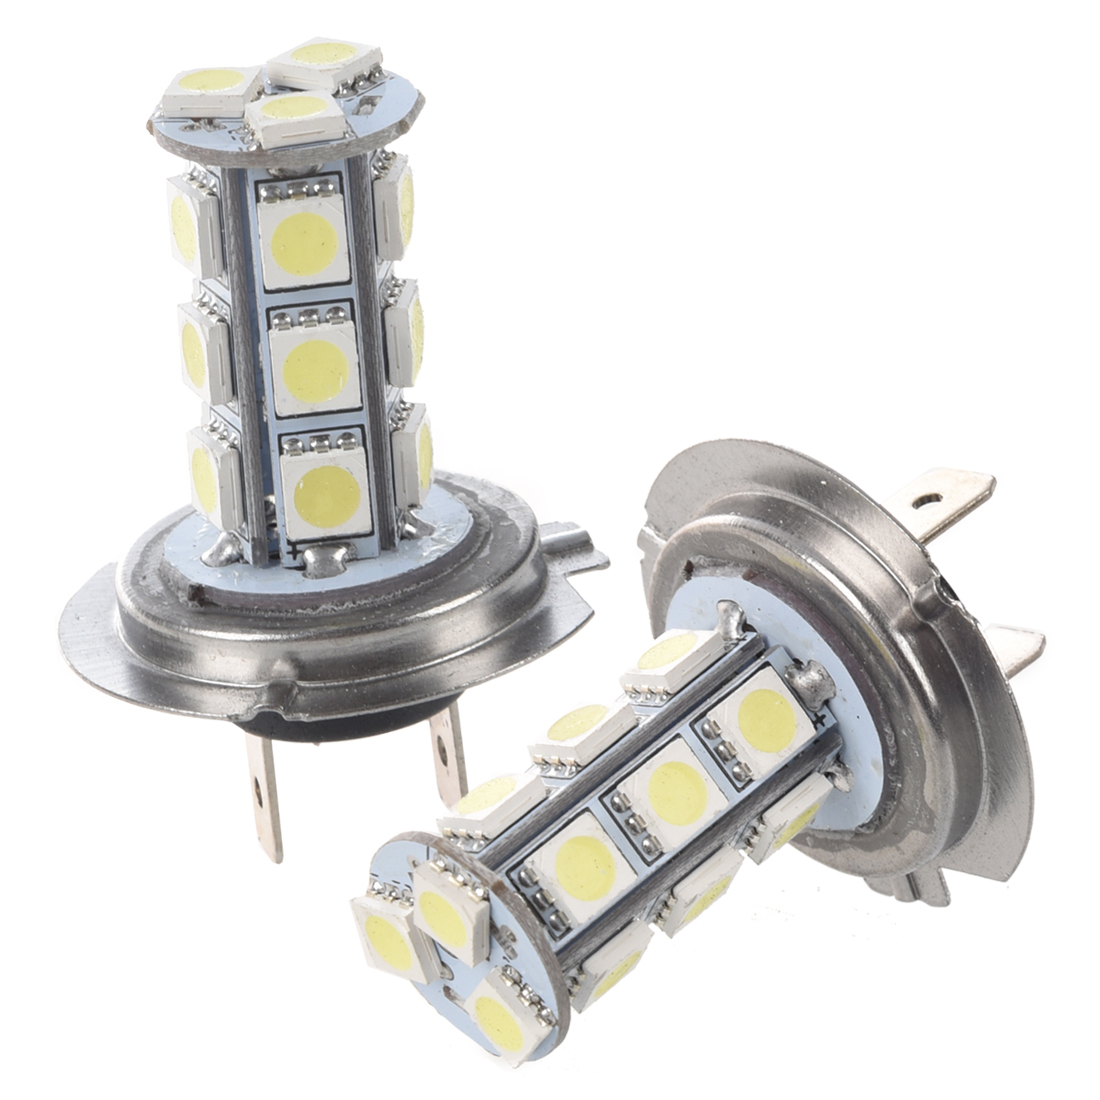 2x h7 18 smd led xenon lampe ampoule bulb blanc 3 chips wt ebay. Black Bedroom Furniture Sets. Home Design Ideas